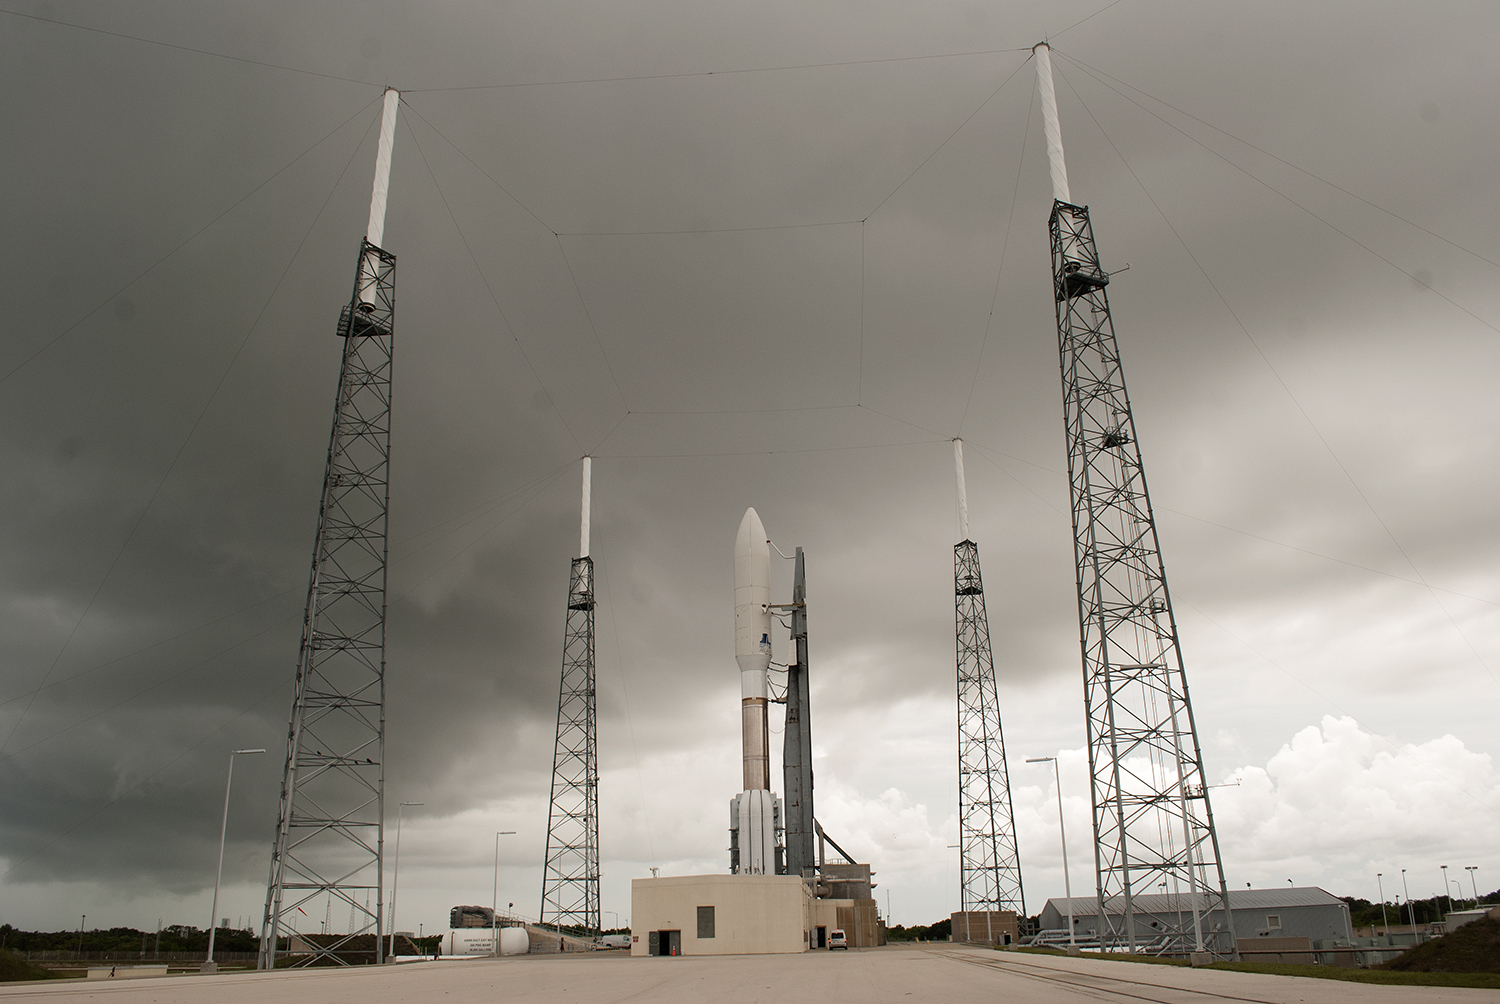 The threat of rain didn't stop the Atlas V from successfully launching MUOS-2. Credit: Val Phillips / Zero-G News